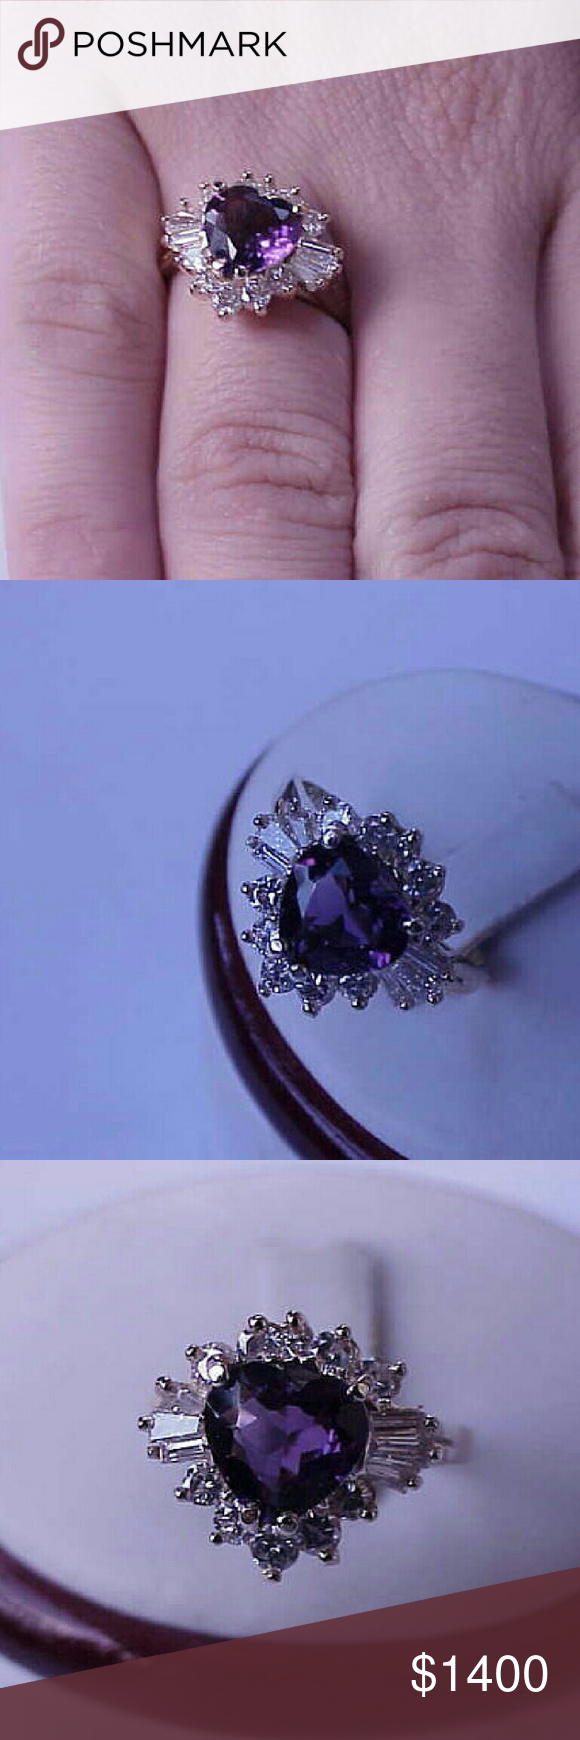 14k yellow  gold 3.25ct diamonds amethyst ring 9mm x 9mm ,estimated 2.00carats heart shaped amethyst and the 1.25ct brilliant cut  and baguettes cut diamonds.  Bright and sparkle!  Vs  in clarity and h in color.  Weight 4gr Size 6. Solid 14k yellow gold. Jewelry Rings